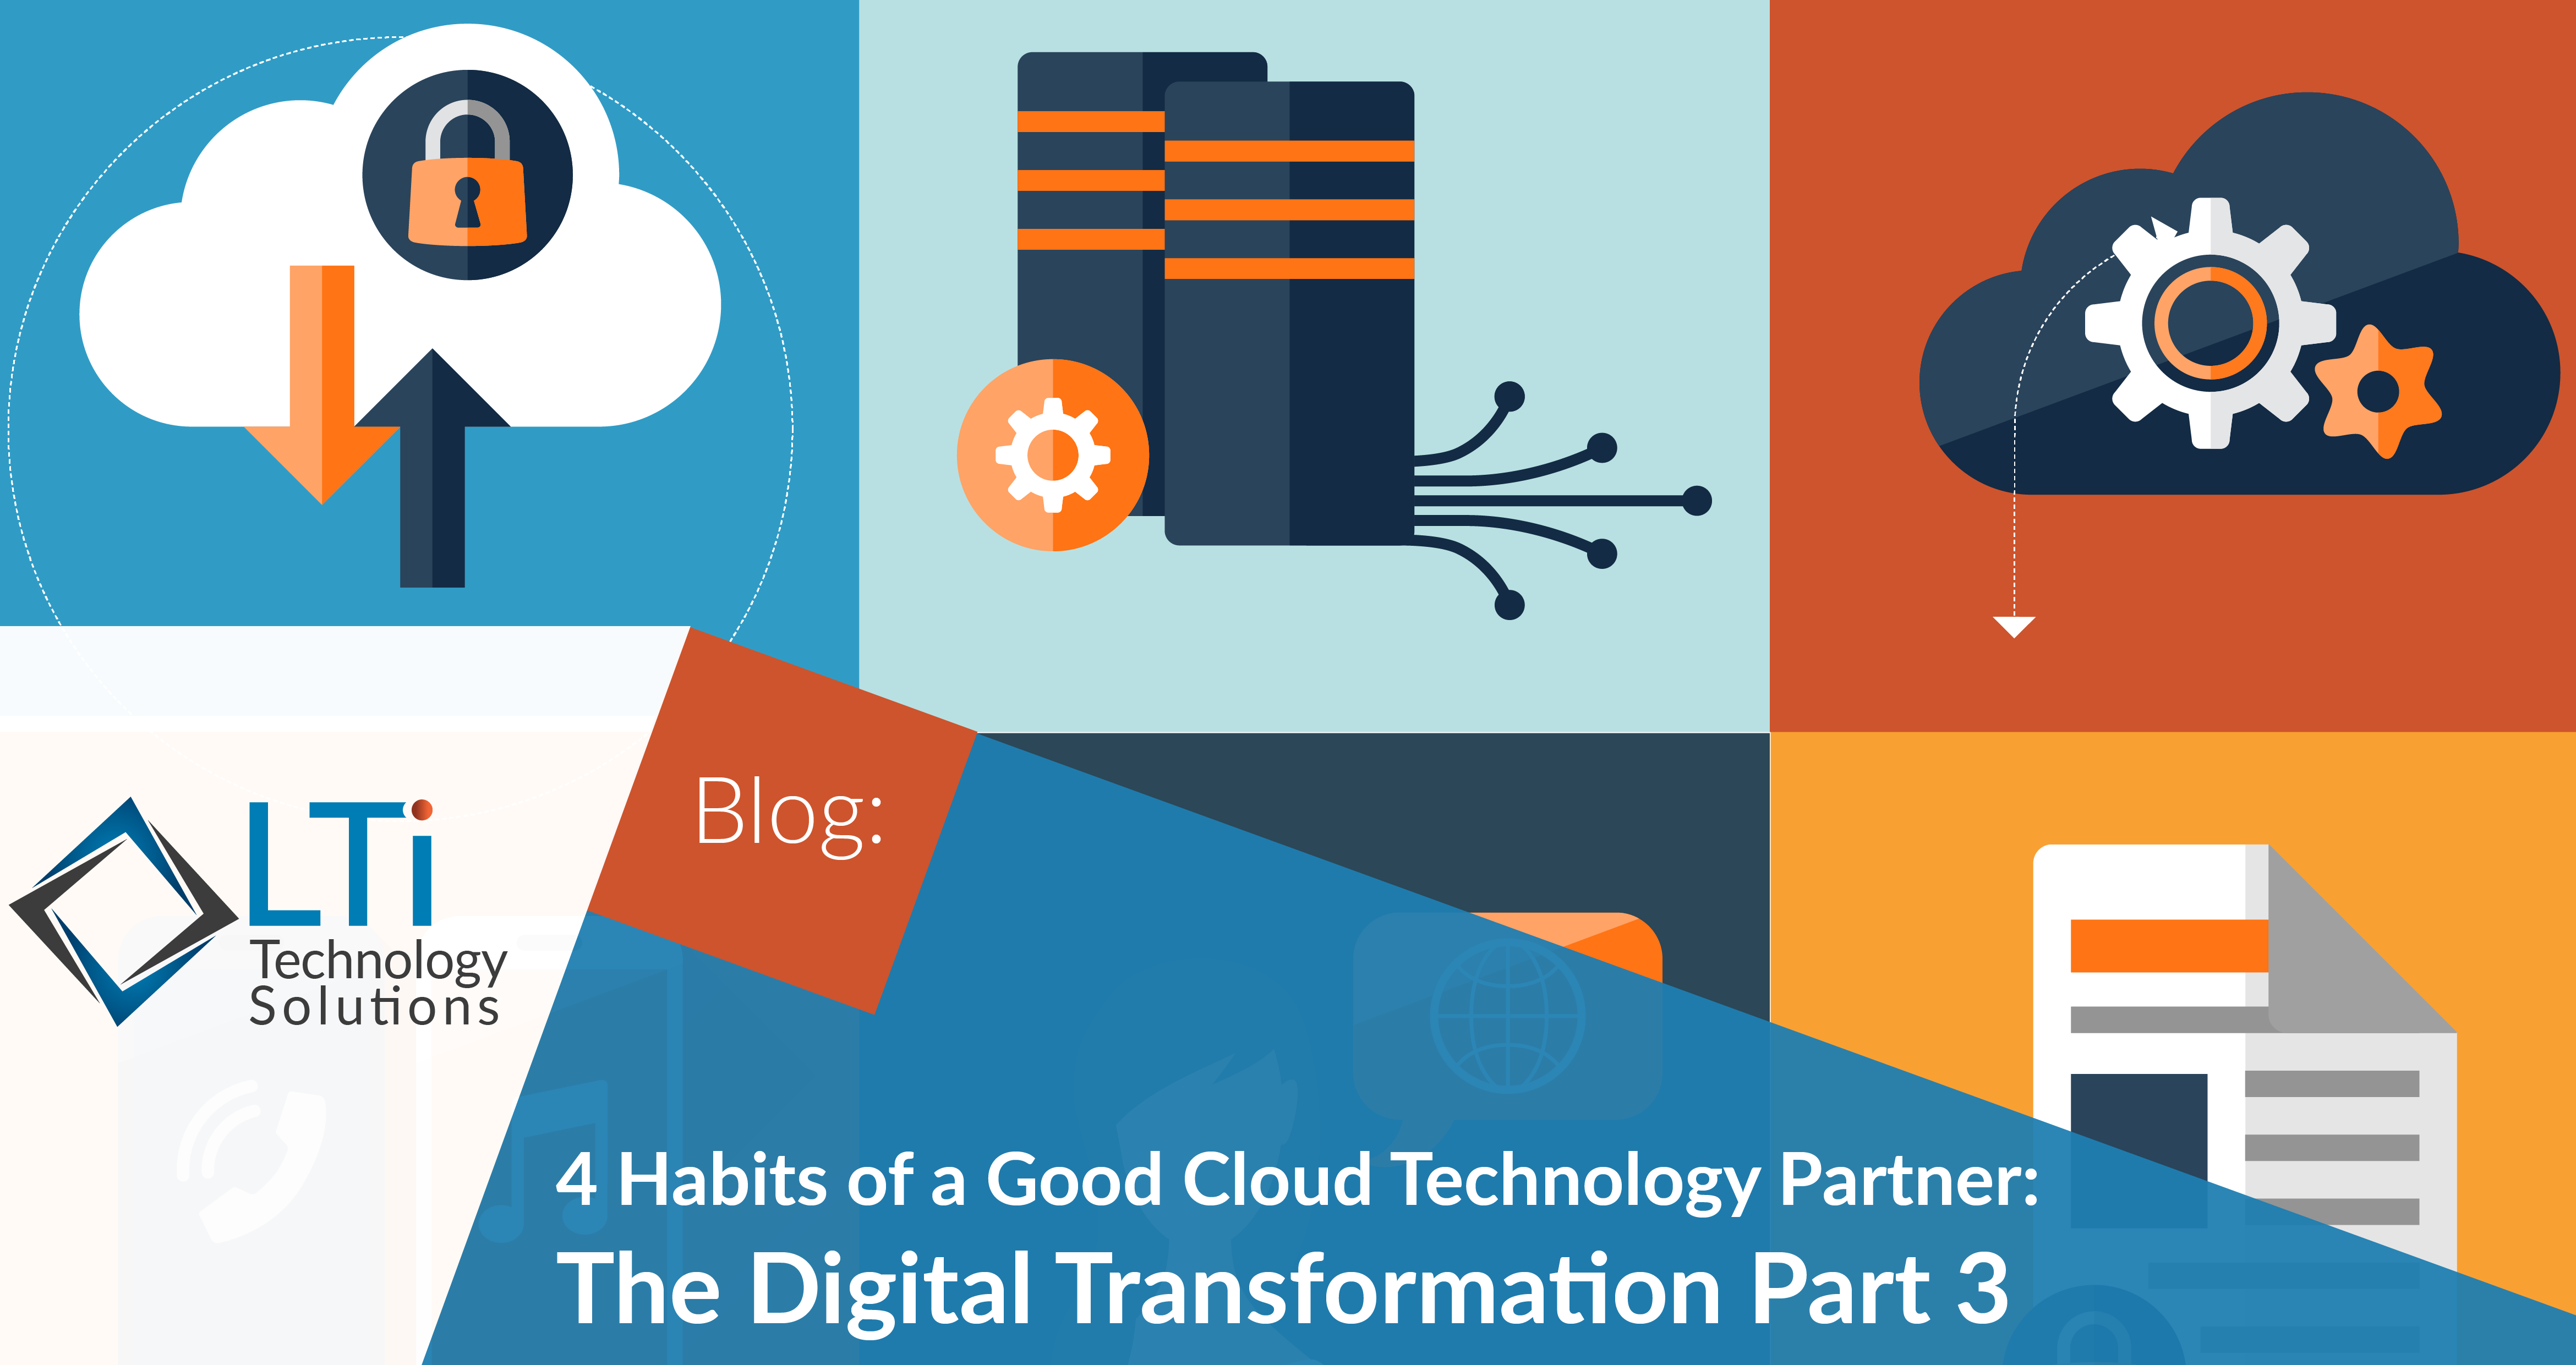 4 Habits of a Good Cloud Technology Partner (Part 3 of 3)